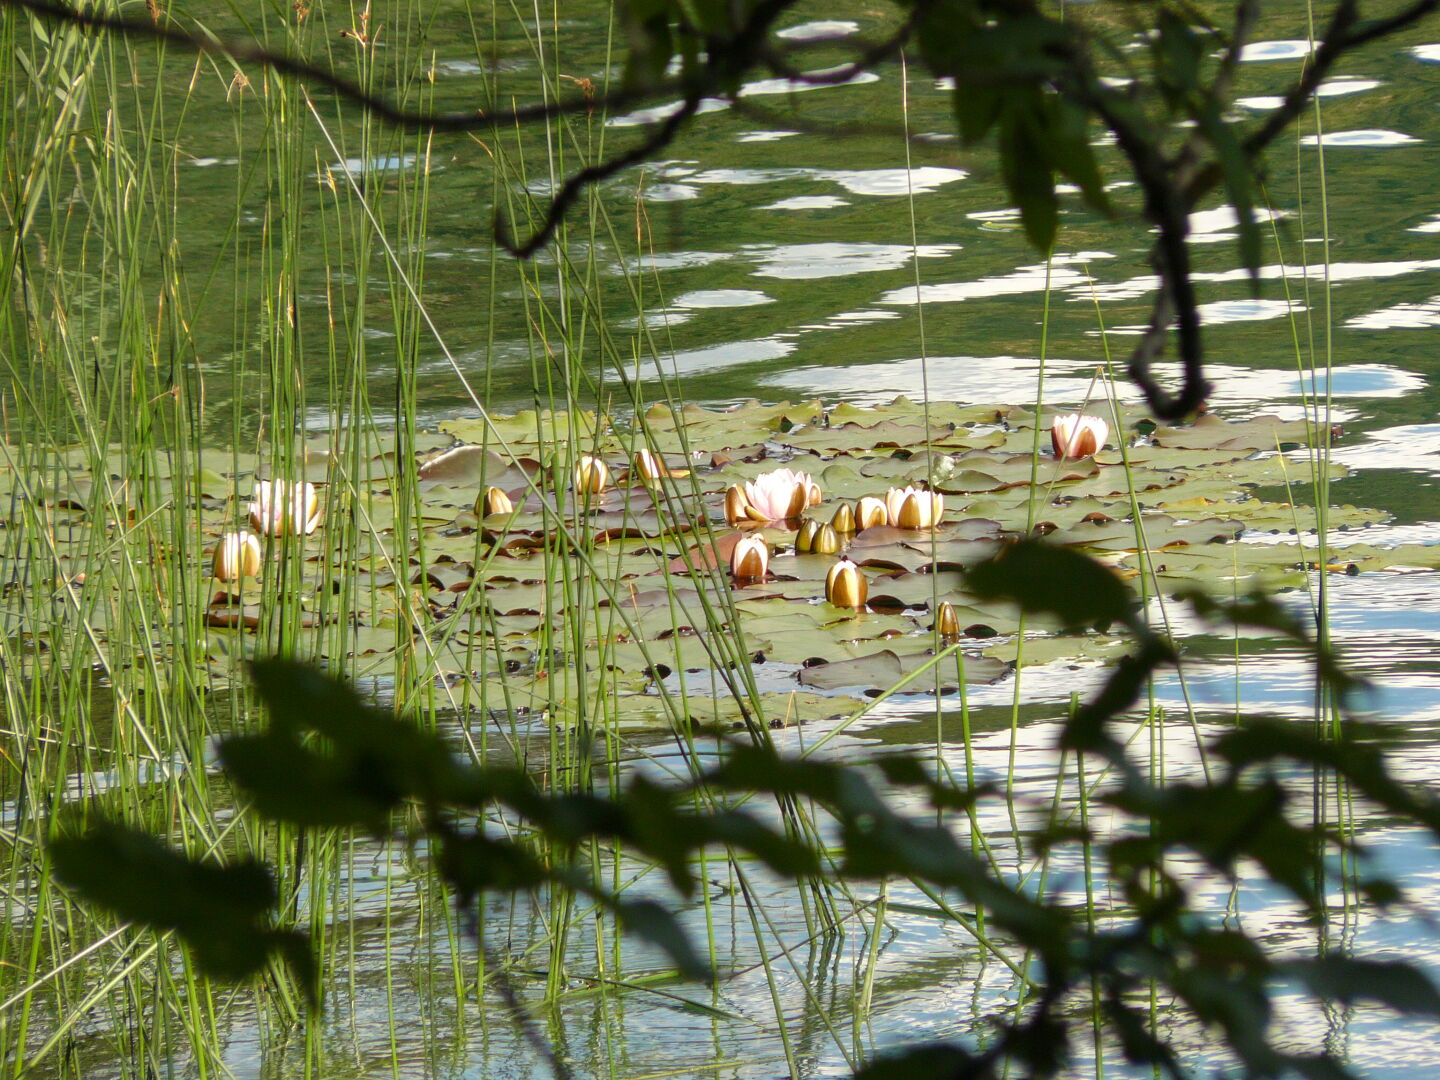 Waterlilies on Lake Alat, a small lake in the mountains that was very popular with locals and tourists for bathing.